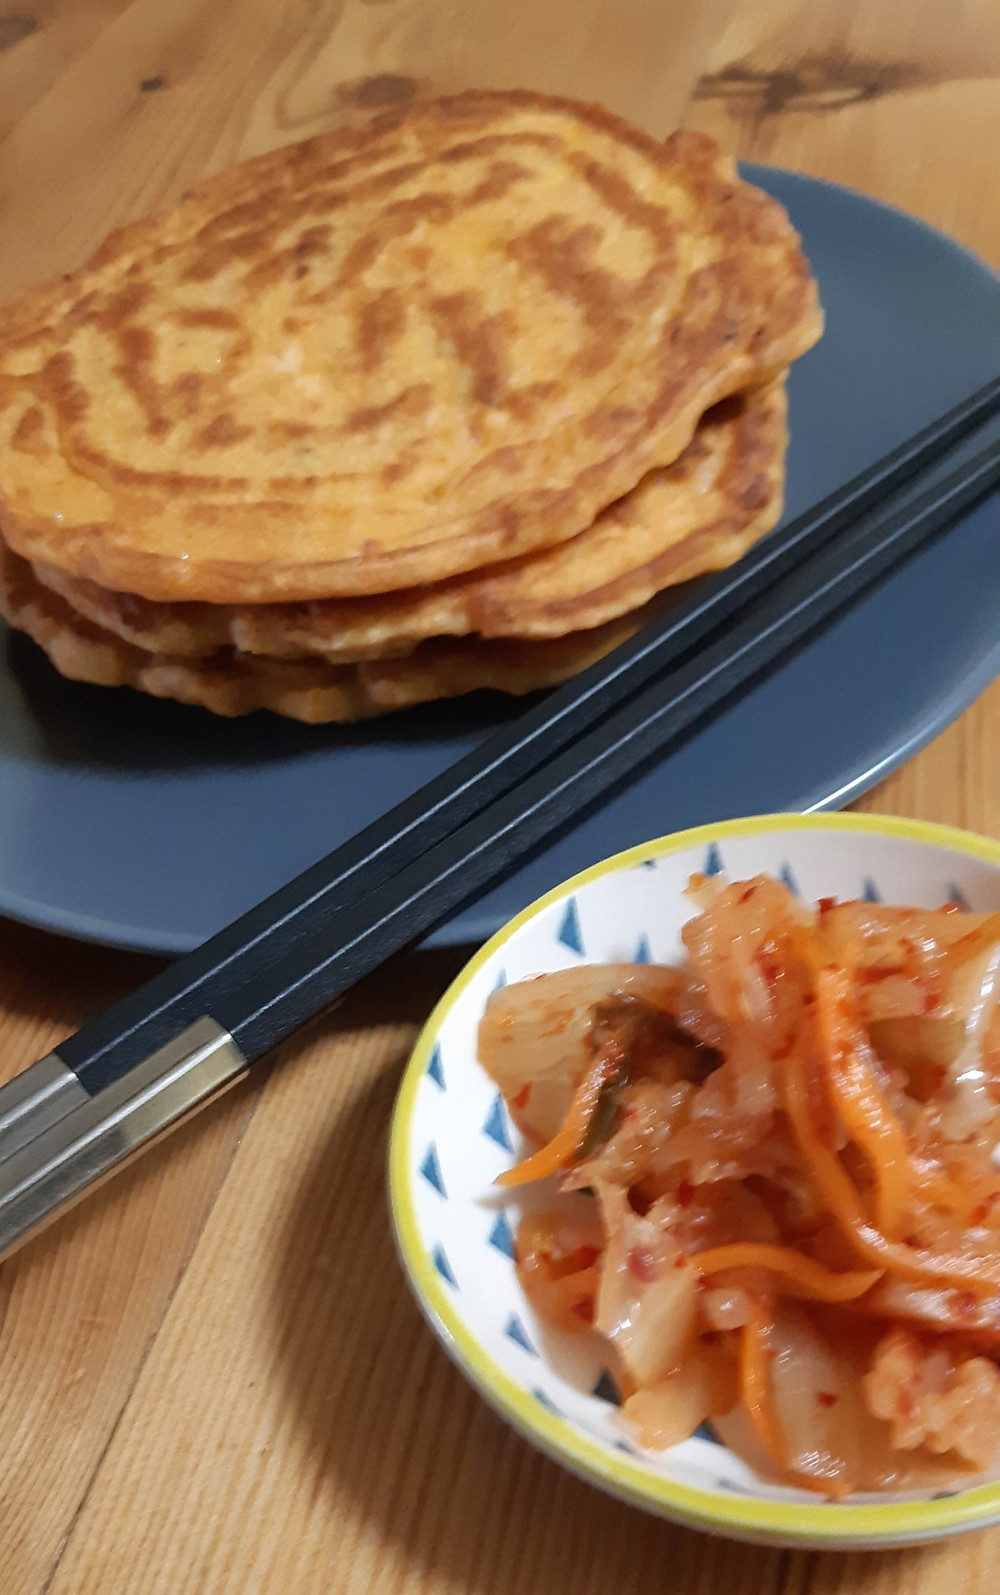 Kimchi pancakes in the background with small serving of kimchi